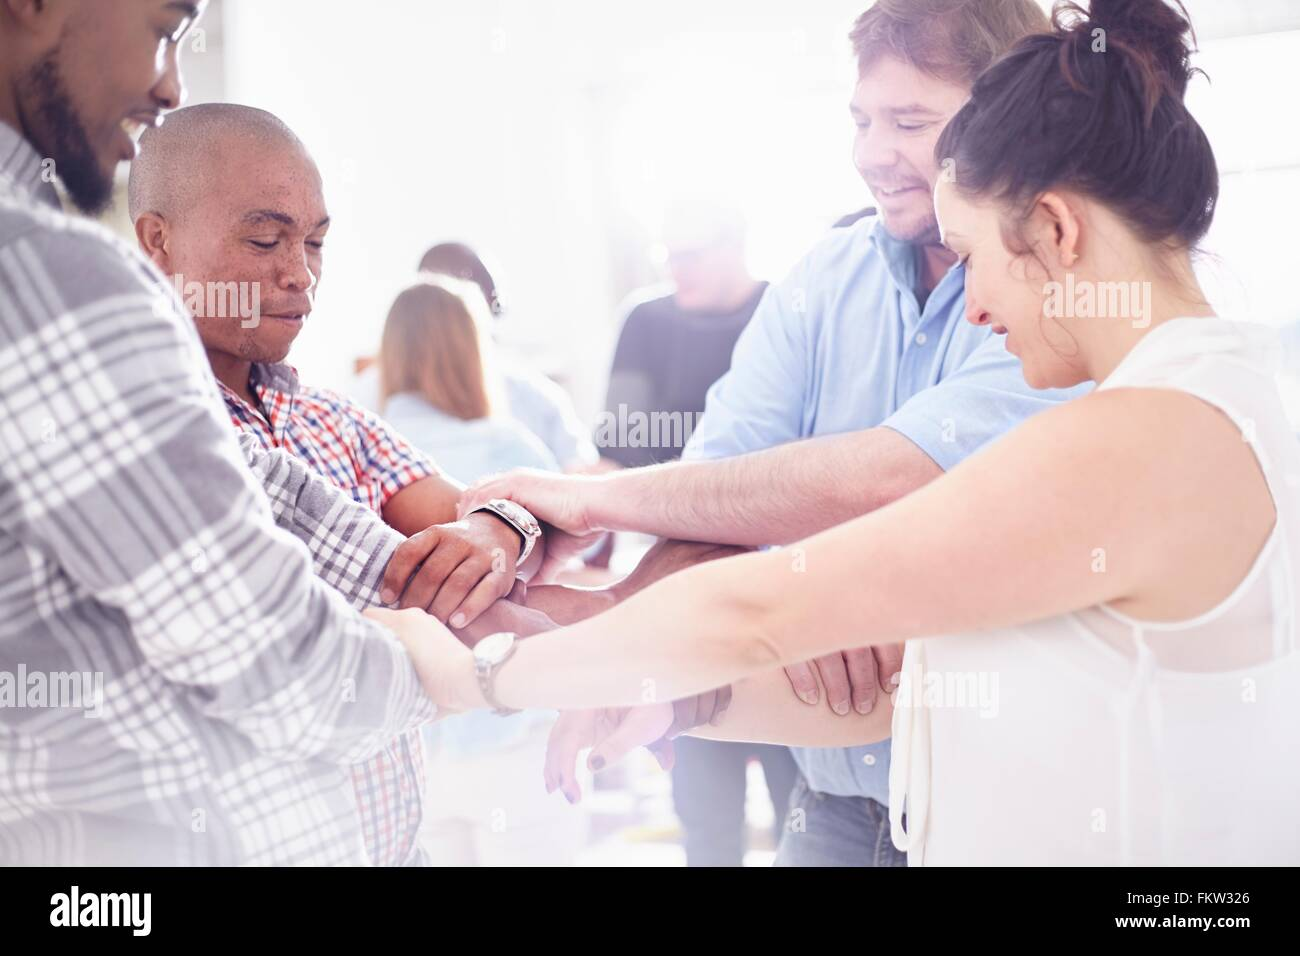 Side view   colleagues in team building task holding wrists smiling - Stock Image